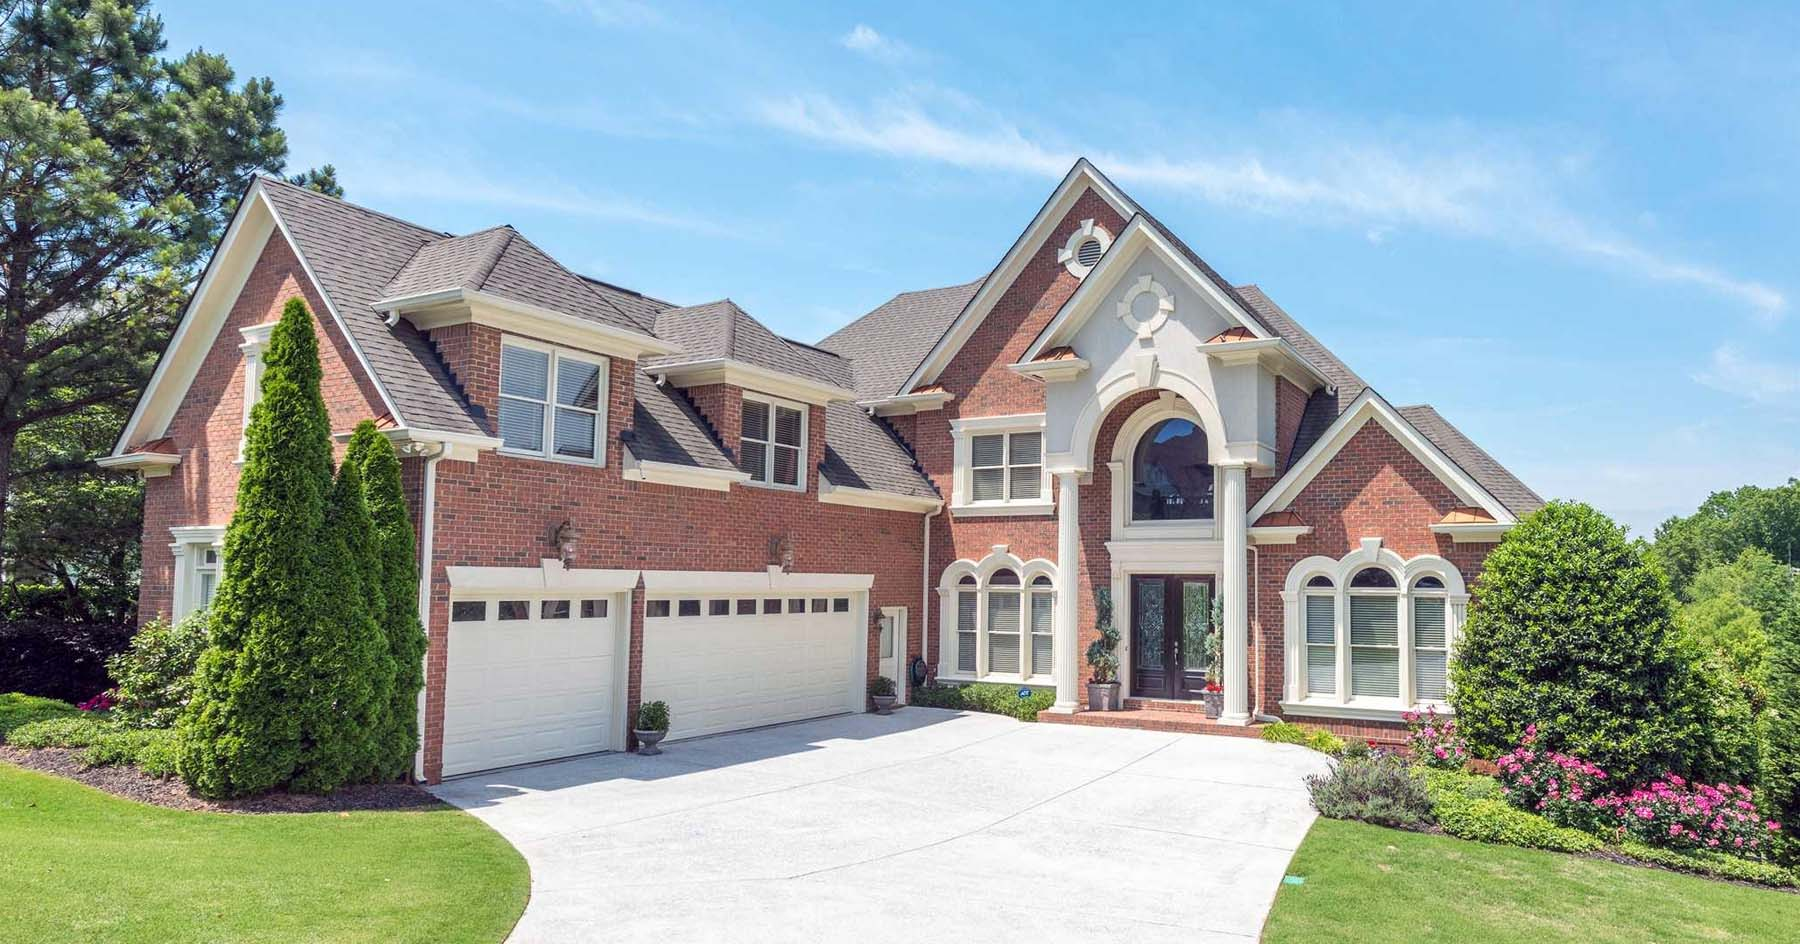 Red brick home with brown gray roof shingle color. Black french style front door. White garage doors. Stone and stucco columns and siding accents. Brown metal roof accents.